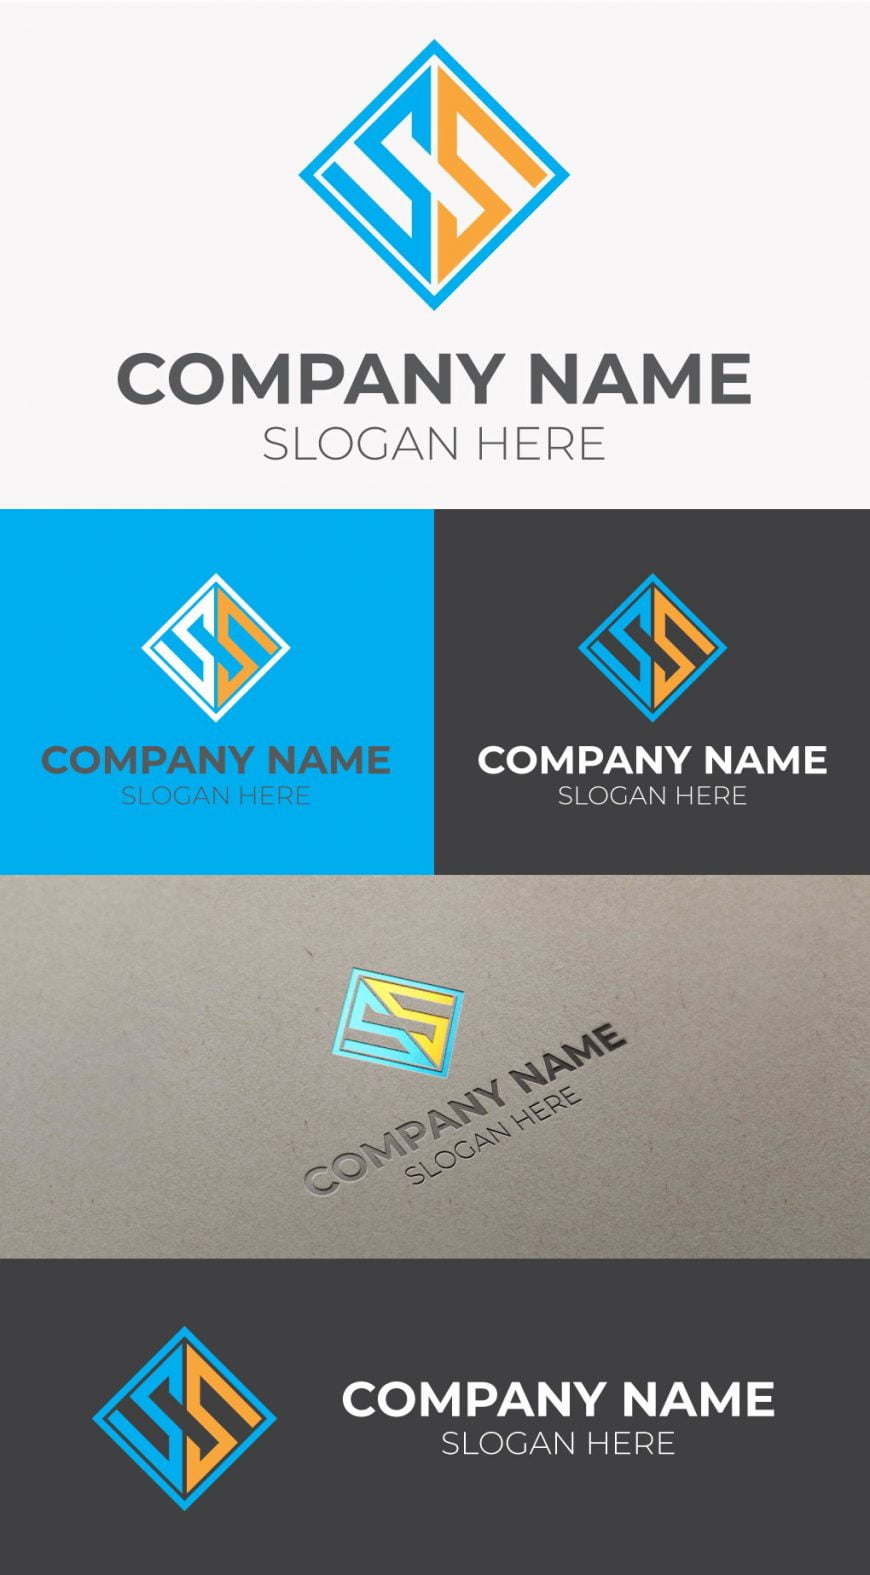 SS-LETTER-DESIGN-FREE-TEMPLATE